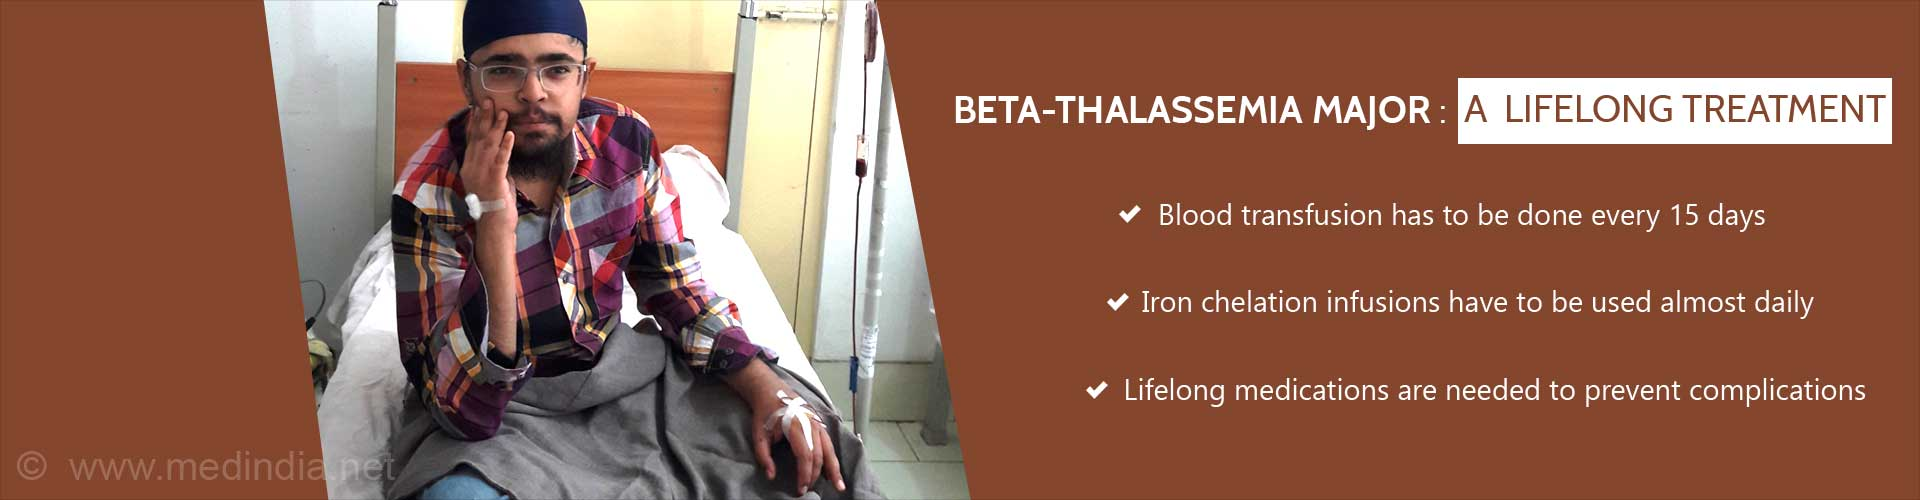 Indias Struggle With Thalassemia  Can Only Gene Therapy Offer Complete Cure